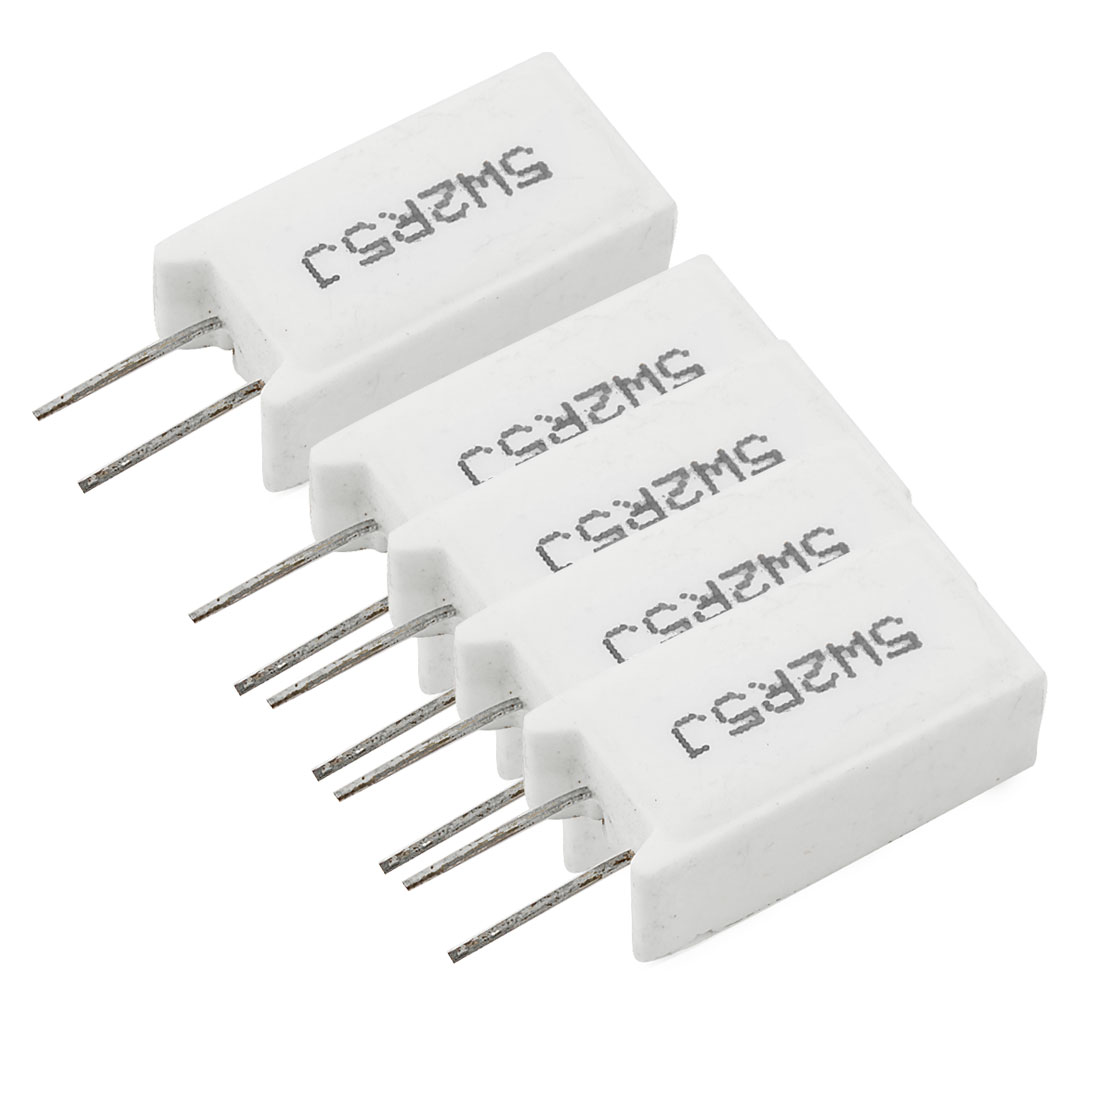 5 x 5W 2.5 Ohm 5% Radial Lead Wirewound Ceramic Cement Power Resistors